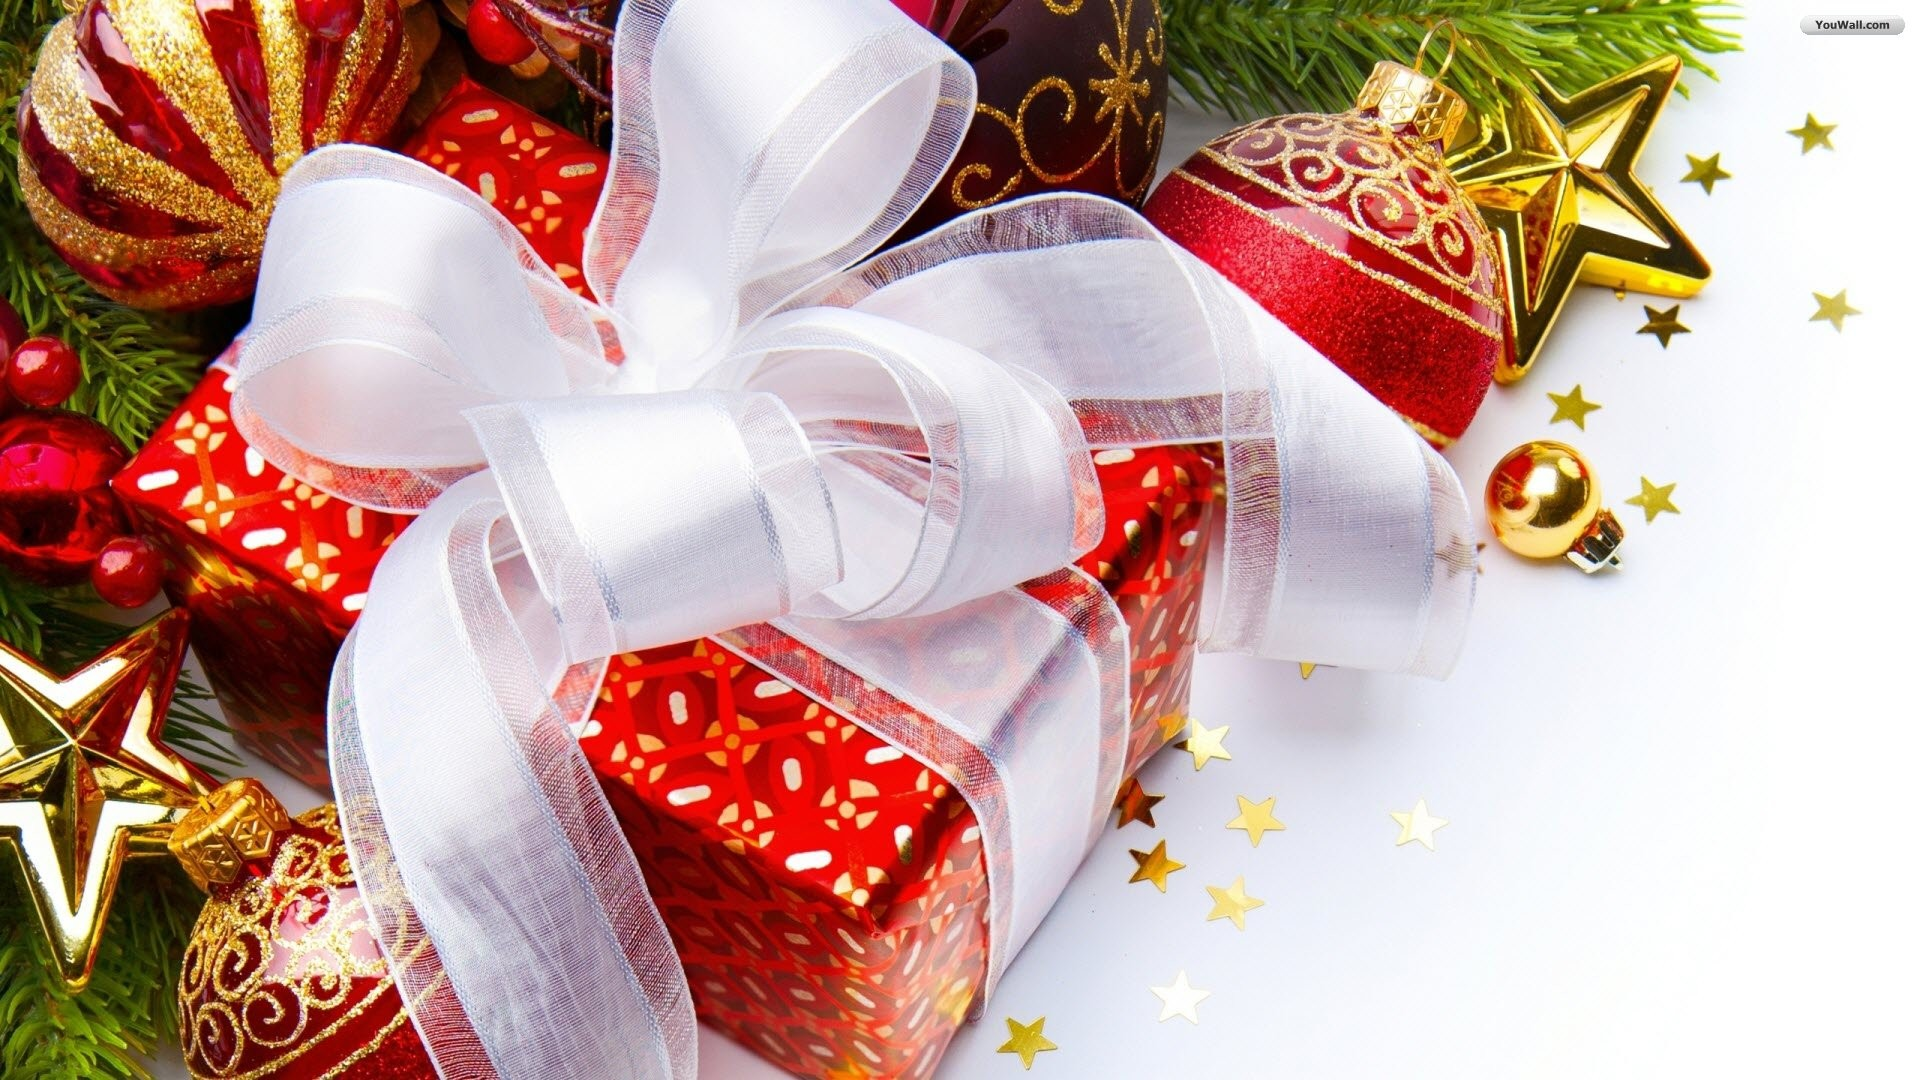 1920x1080 Christmas gifts Wallpaper Christmas Holidays (46 Wallpapers) – HD Wallpapers